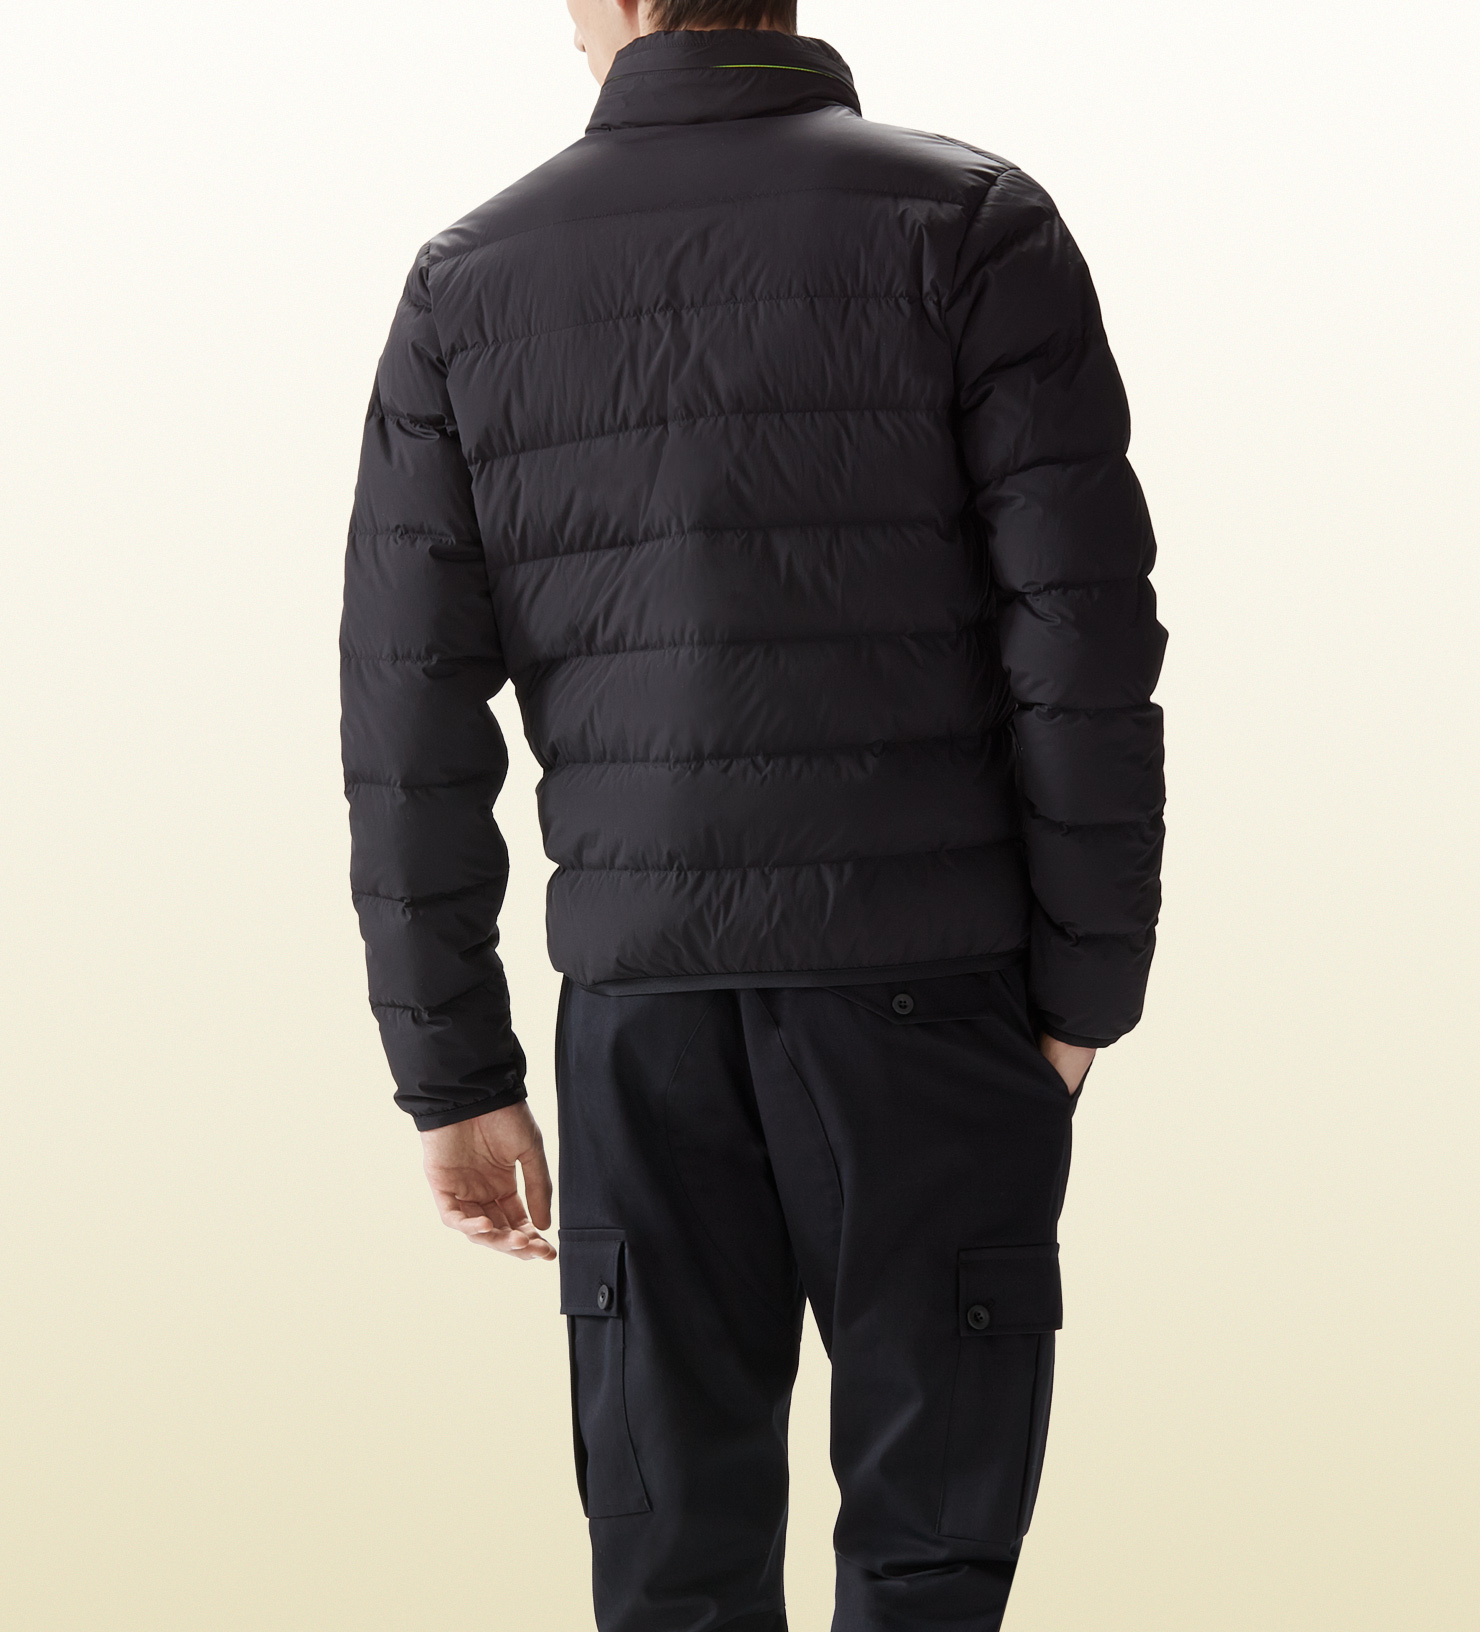 bdb4f1320 Gucci Men's Down Jacket From Viaggio Collection in Black for Men - Lyst